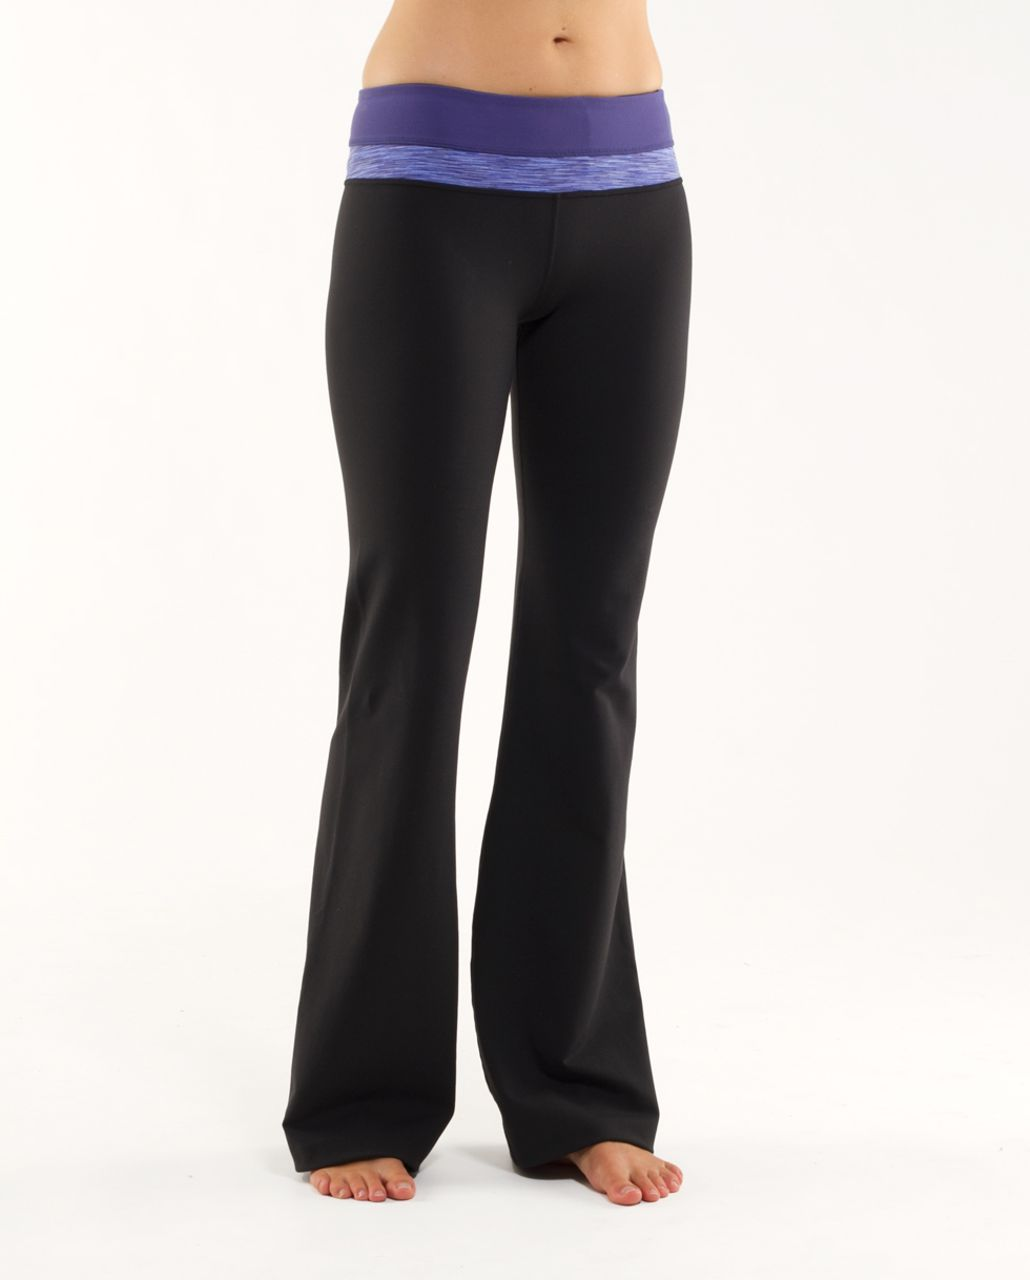 Lululemon Groove Pant (Regular) - Black /  Royalty /  Royalty Space Dye